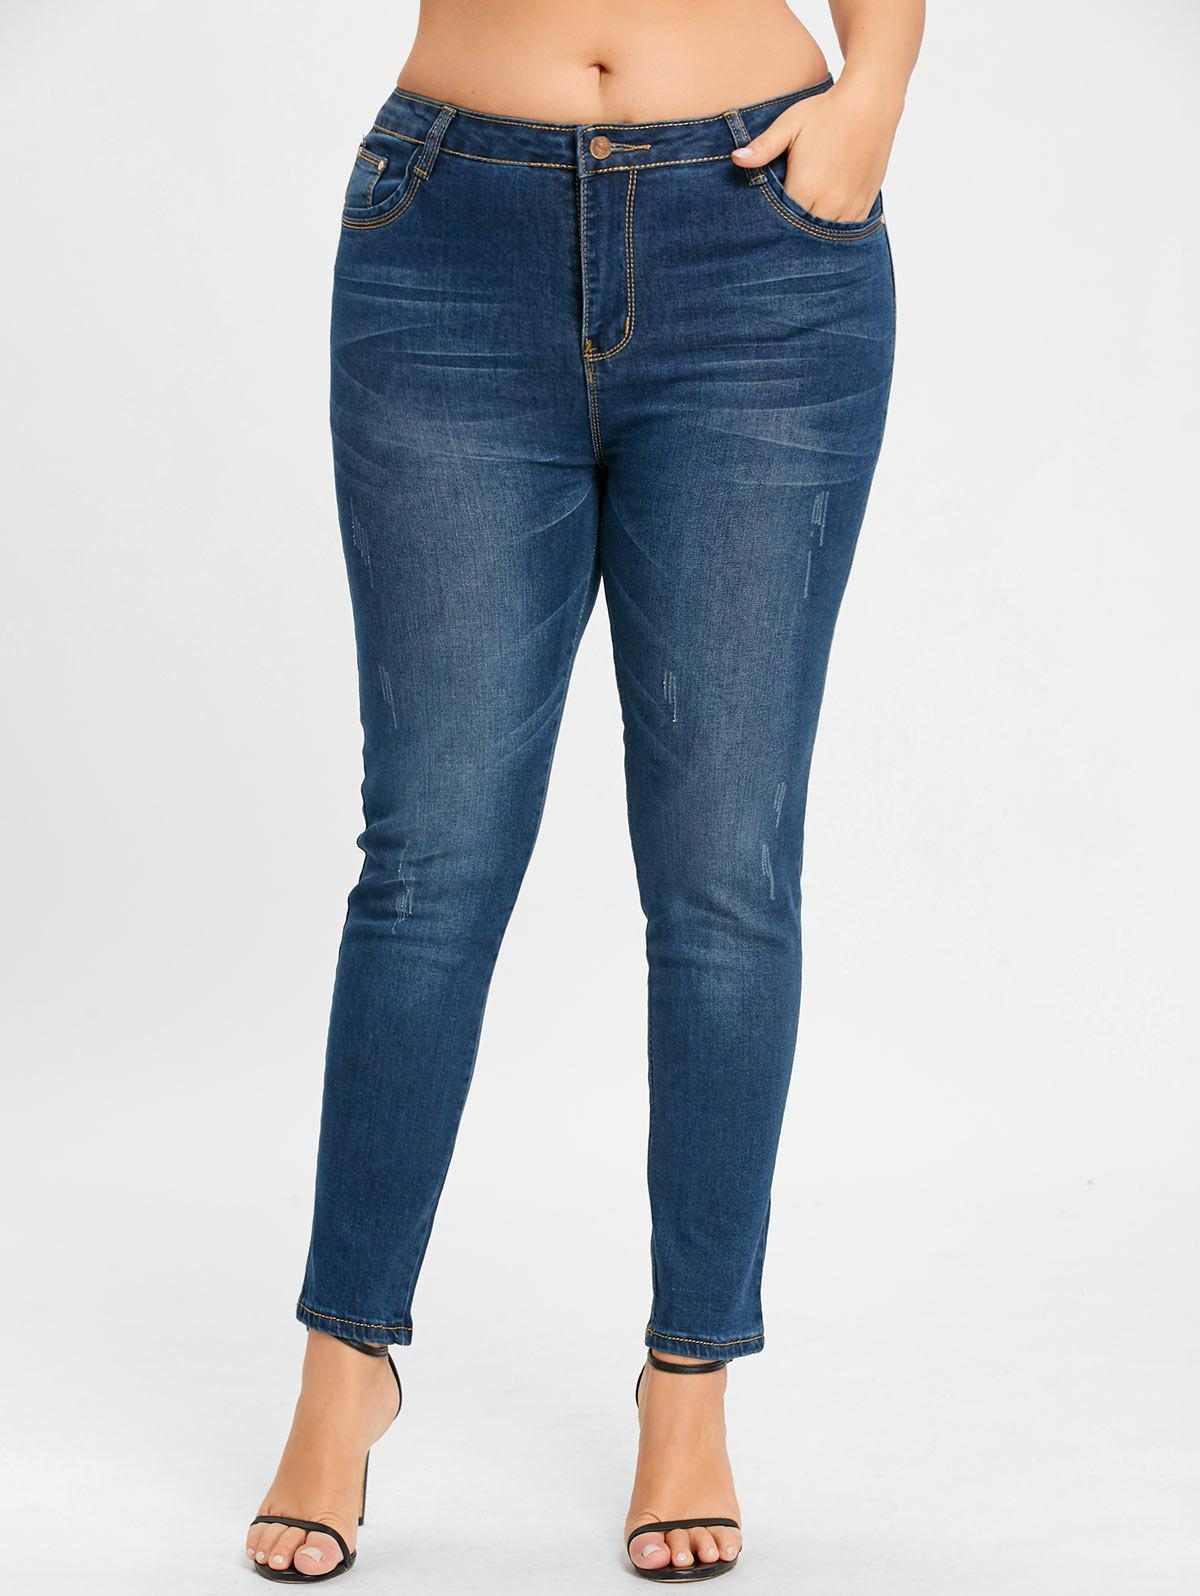 Plus Size Zipper Light Wash JeansWOMEN<br><br>Size: 6XL; Color: BLUE; Style: Fashion; Length: Normal; Material: Polyester; Fit Type: Skinny; Waist Type: Mid; Closure Type: Zipper Fly; Pattern Type: Solid; Pant Style: Pencil Pants; With Belt: No; Weight: 0.6500kg; Package Contents: 1 x Jeans;